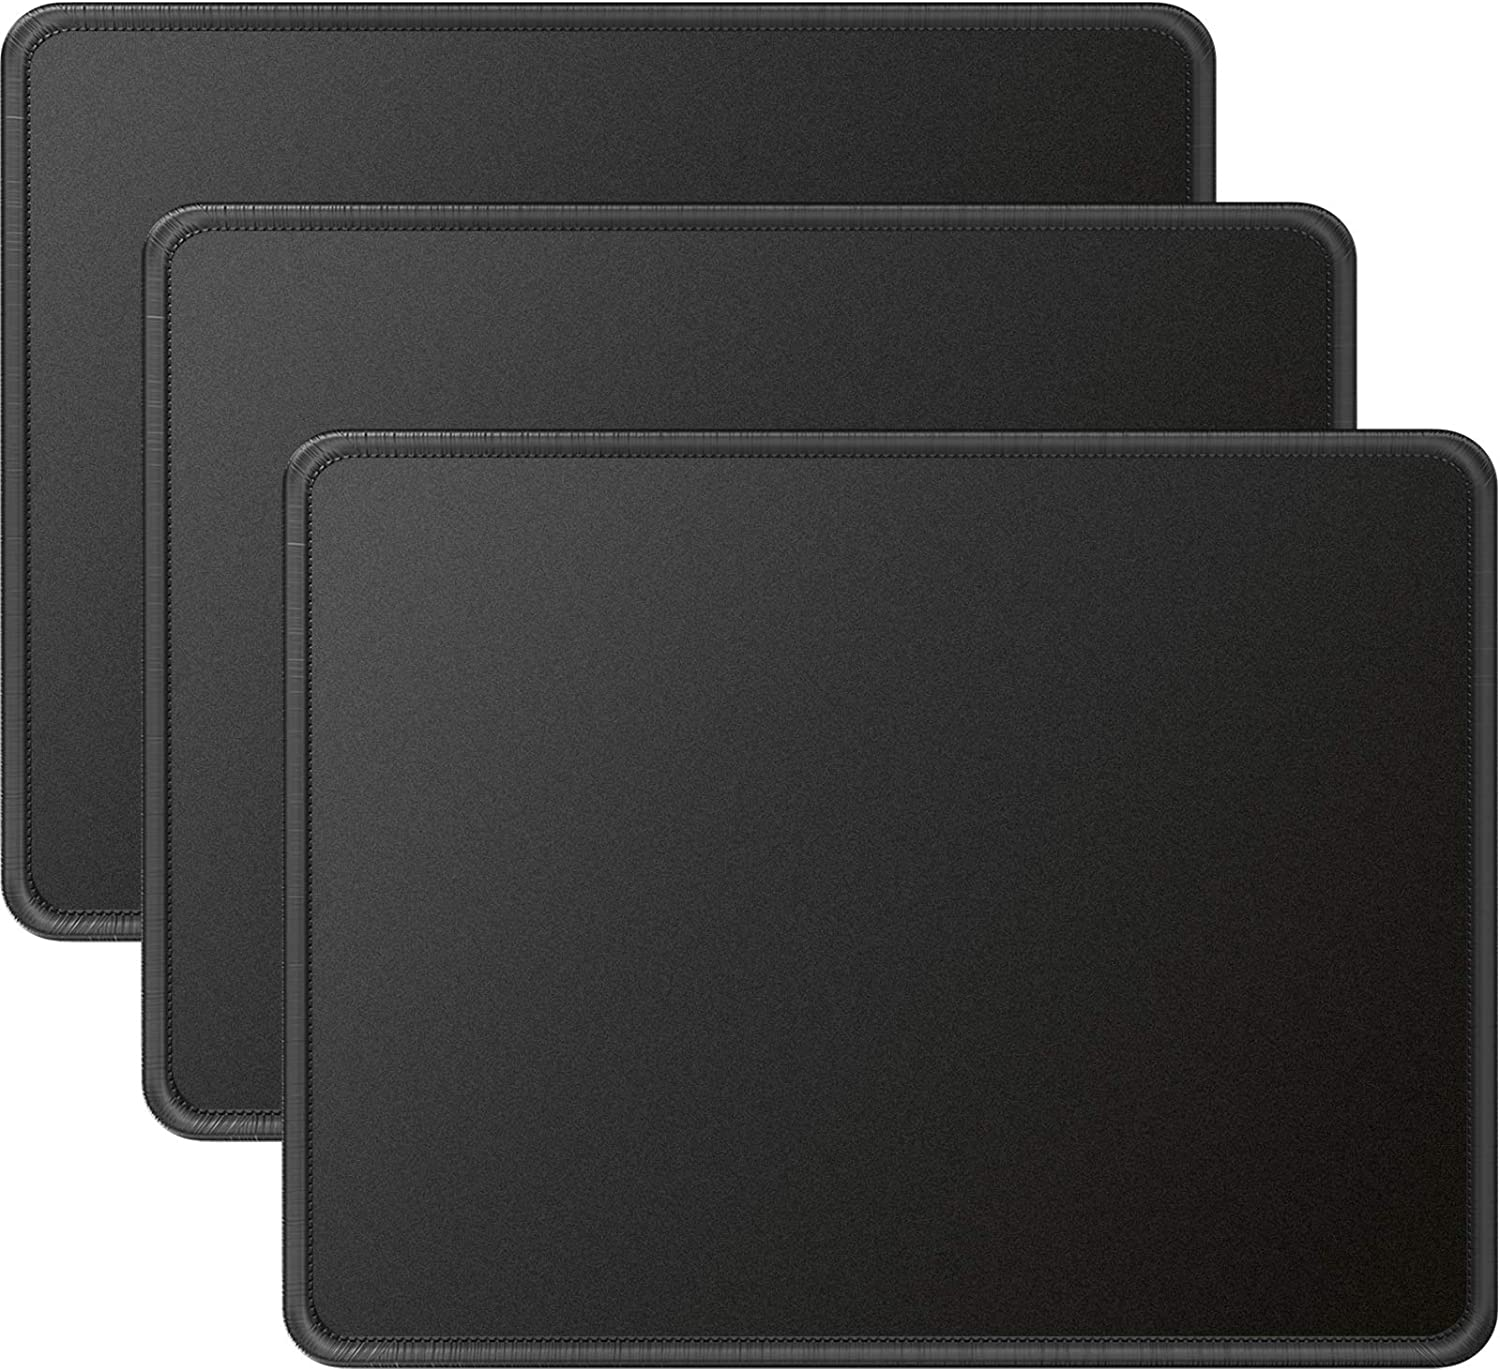 MROCO Mouse Pads Pack with Non-Slip Rubber Base, Premium-Textured and Waterproof Mousepads Bulk with Stitched Edges, Mouse Pad for Computers, Laptop, Office & Home, 11x8.5 inches, 3mm, 3 Pack, Black